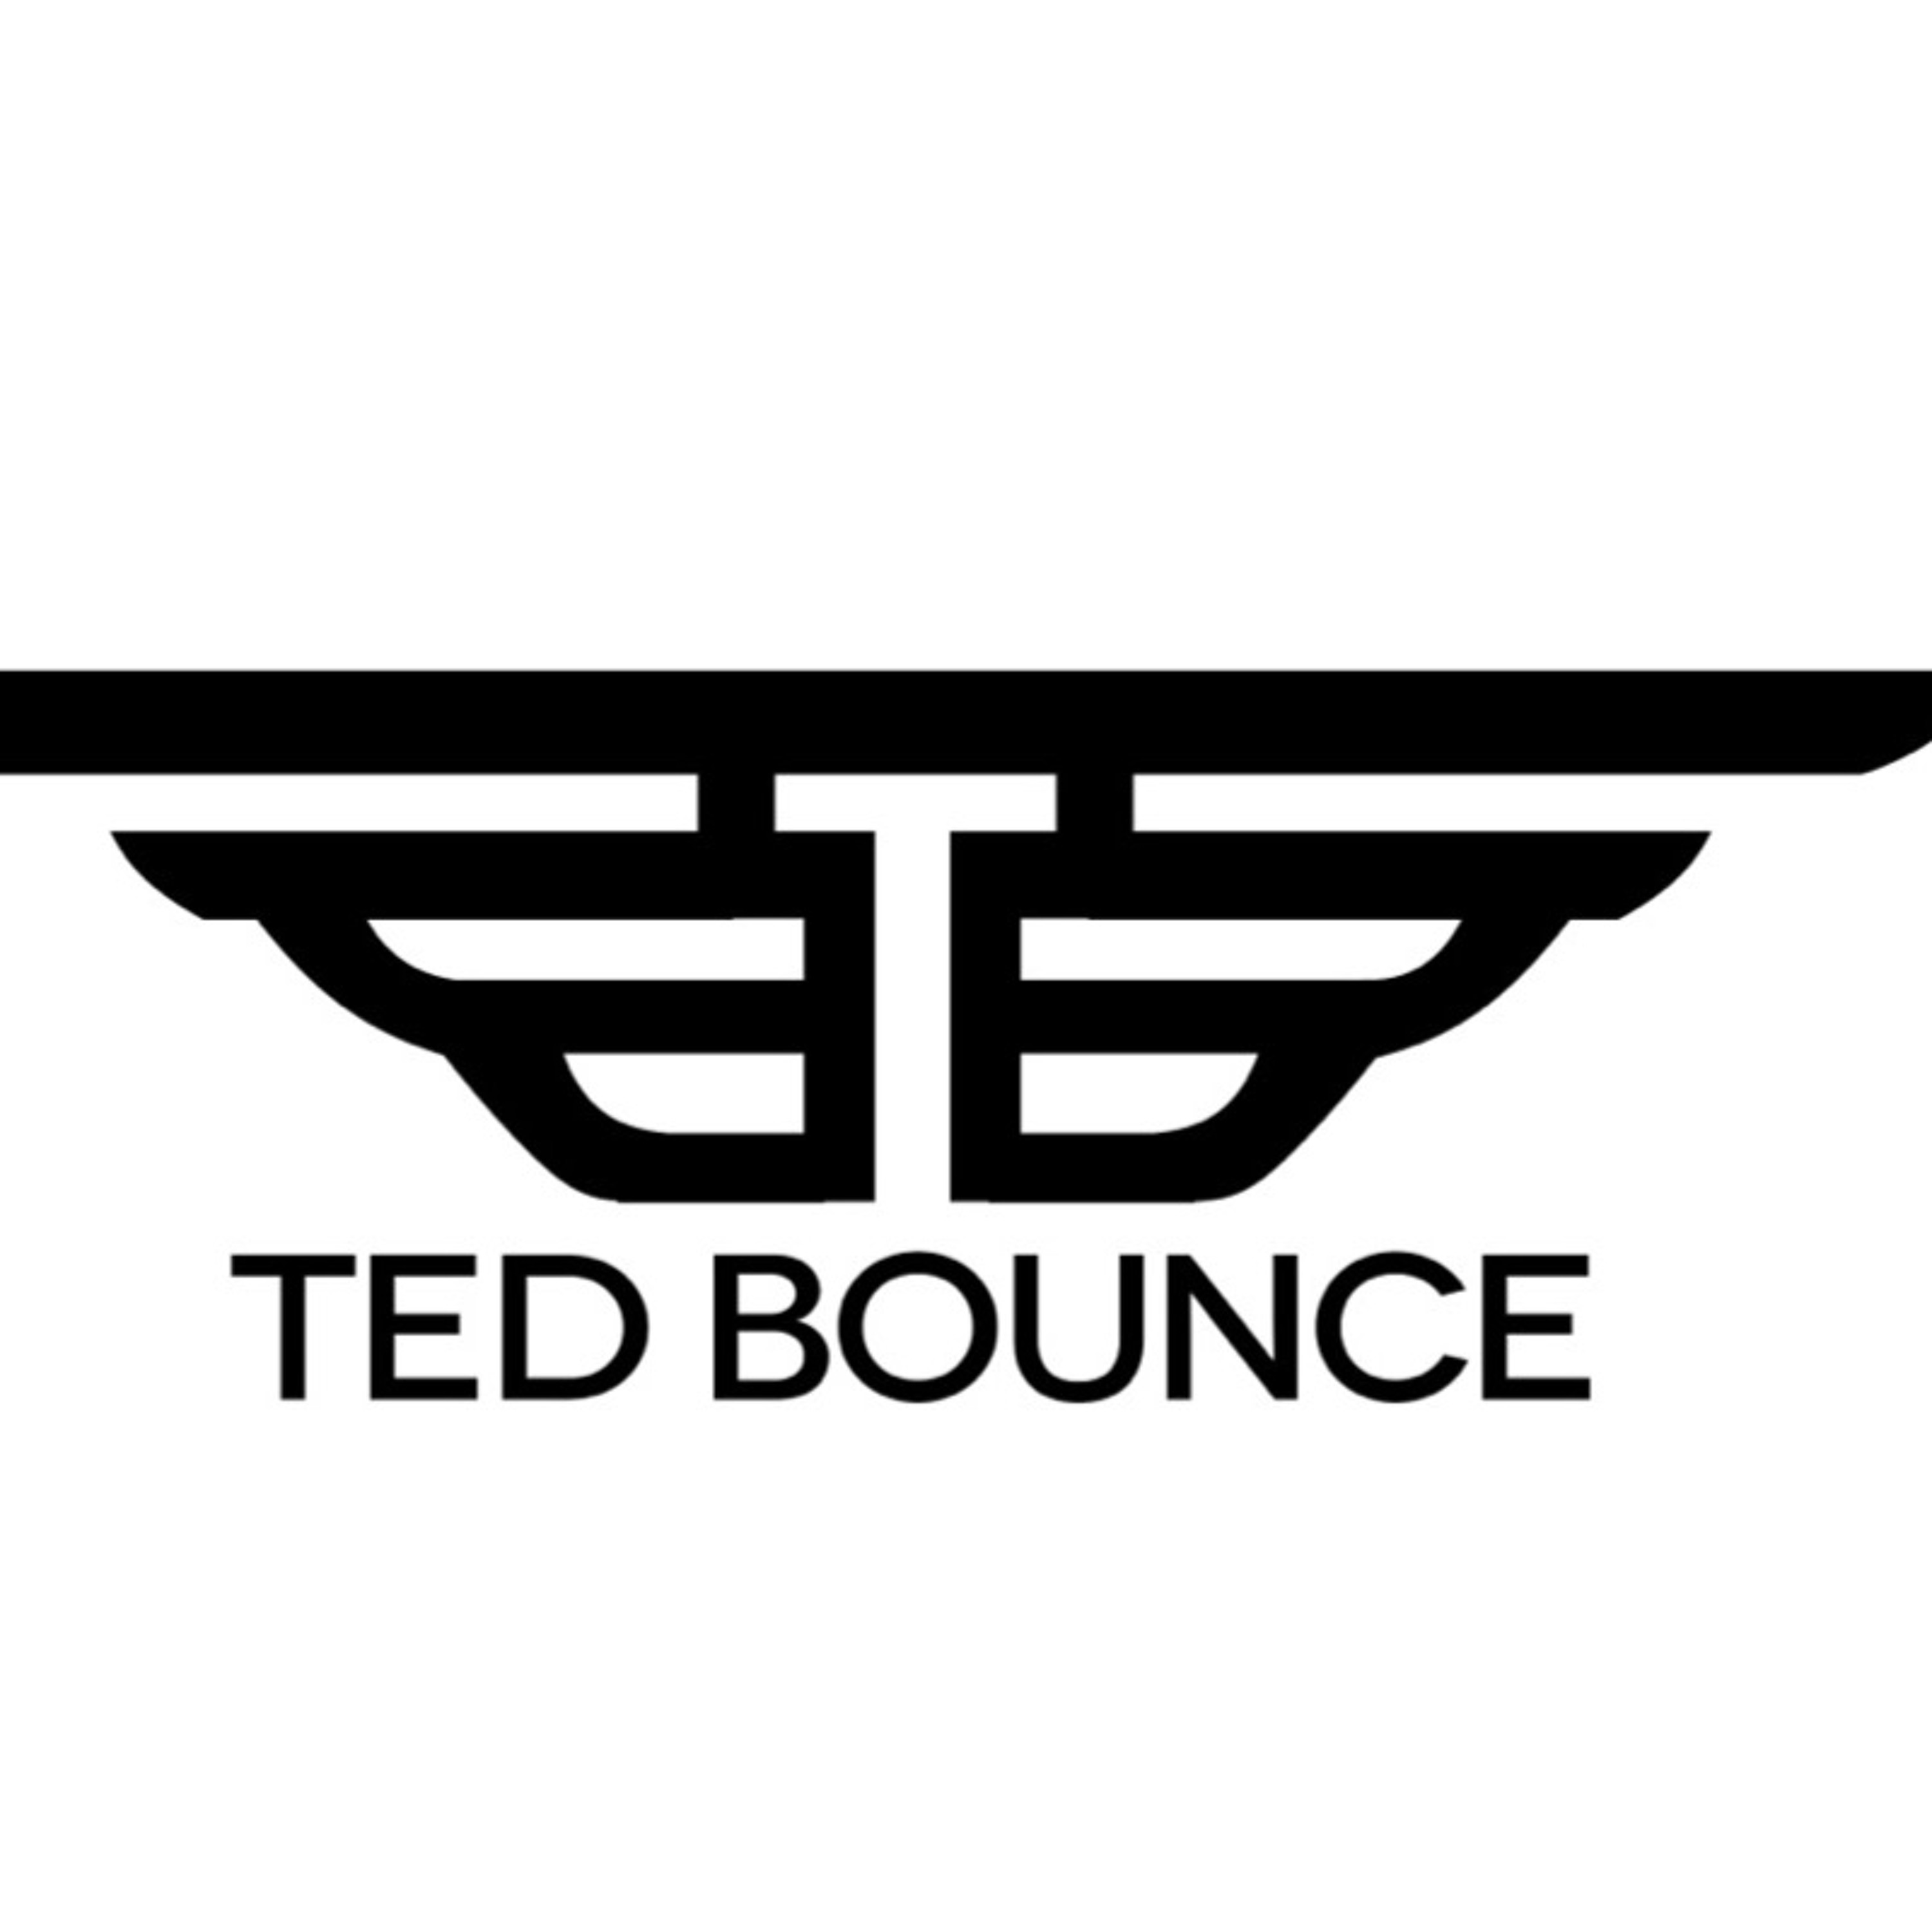 Ted Bounce